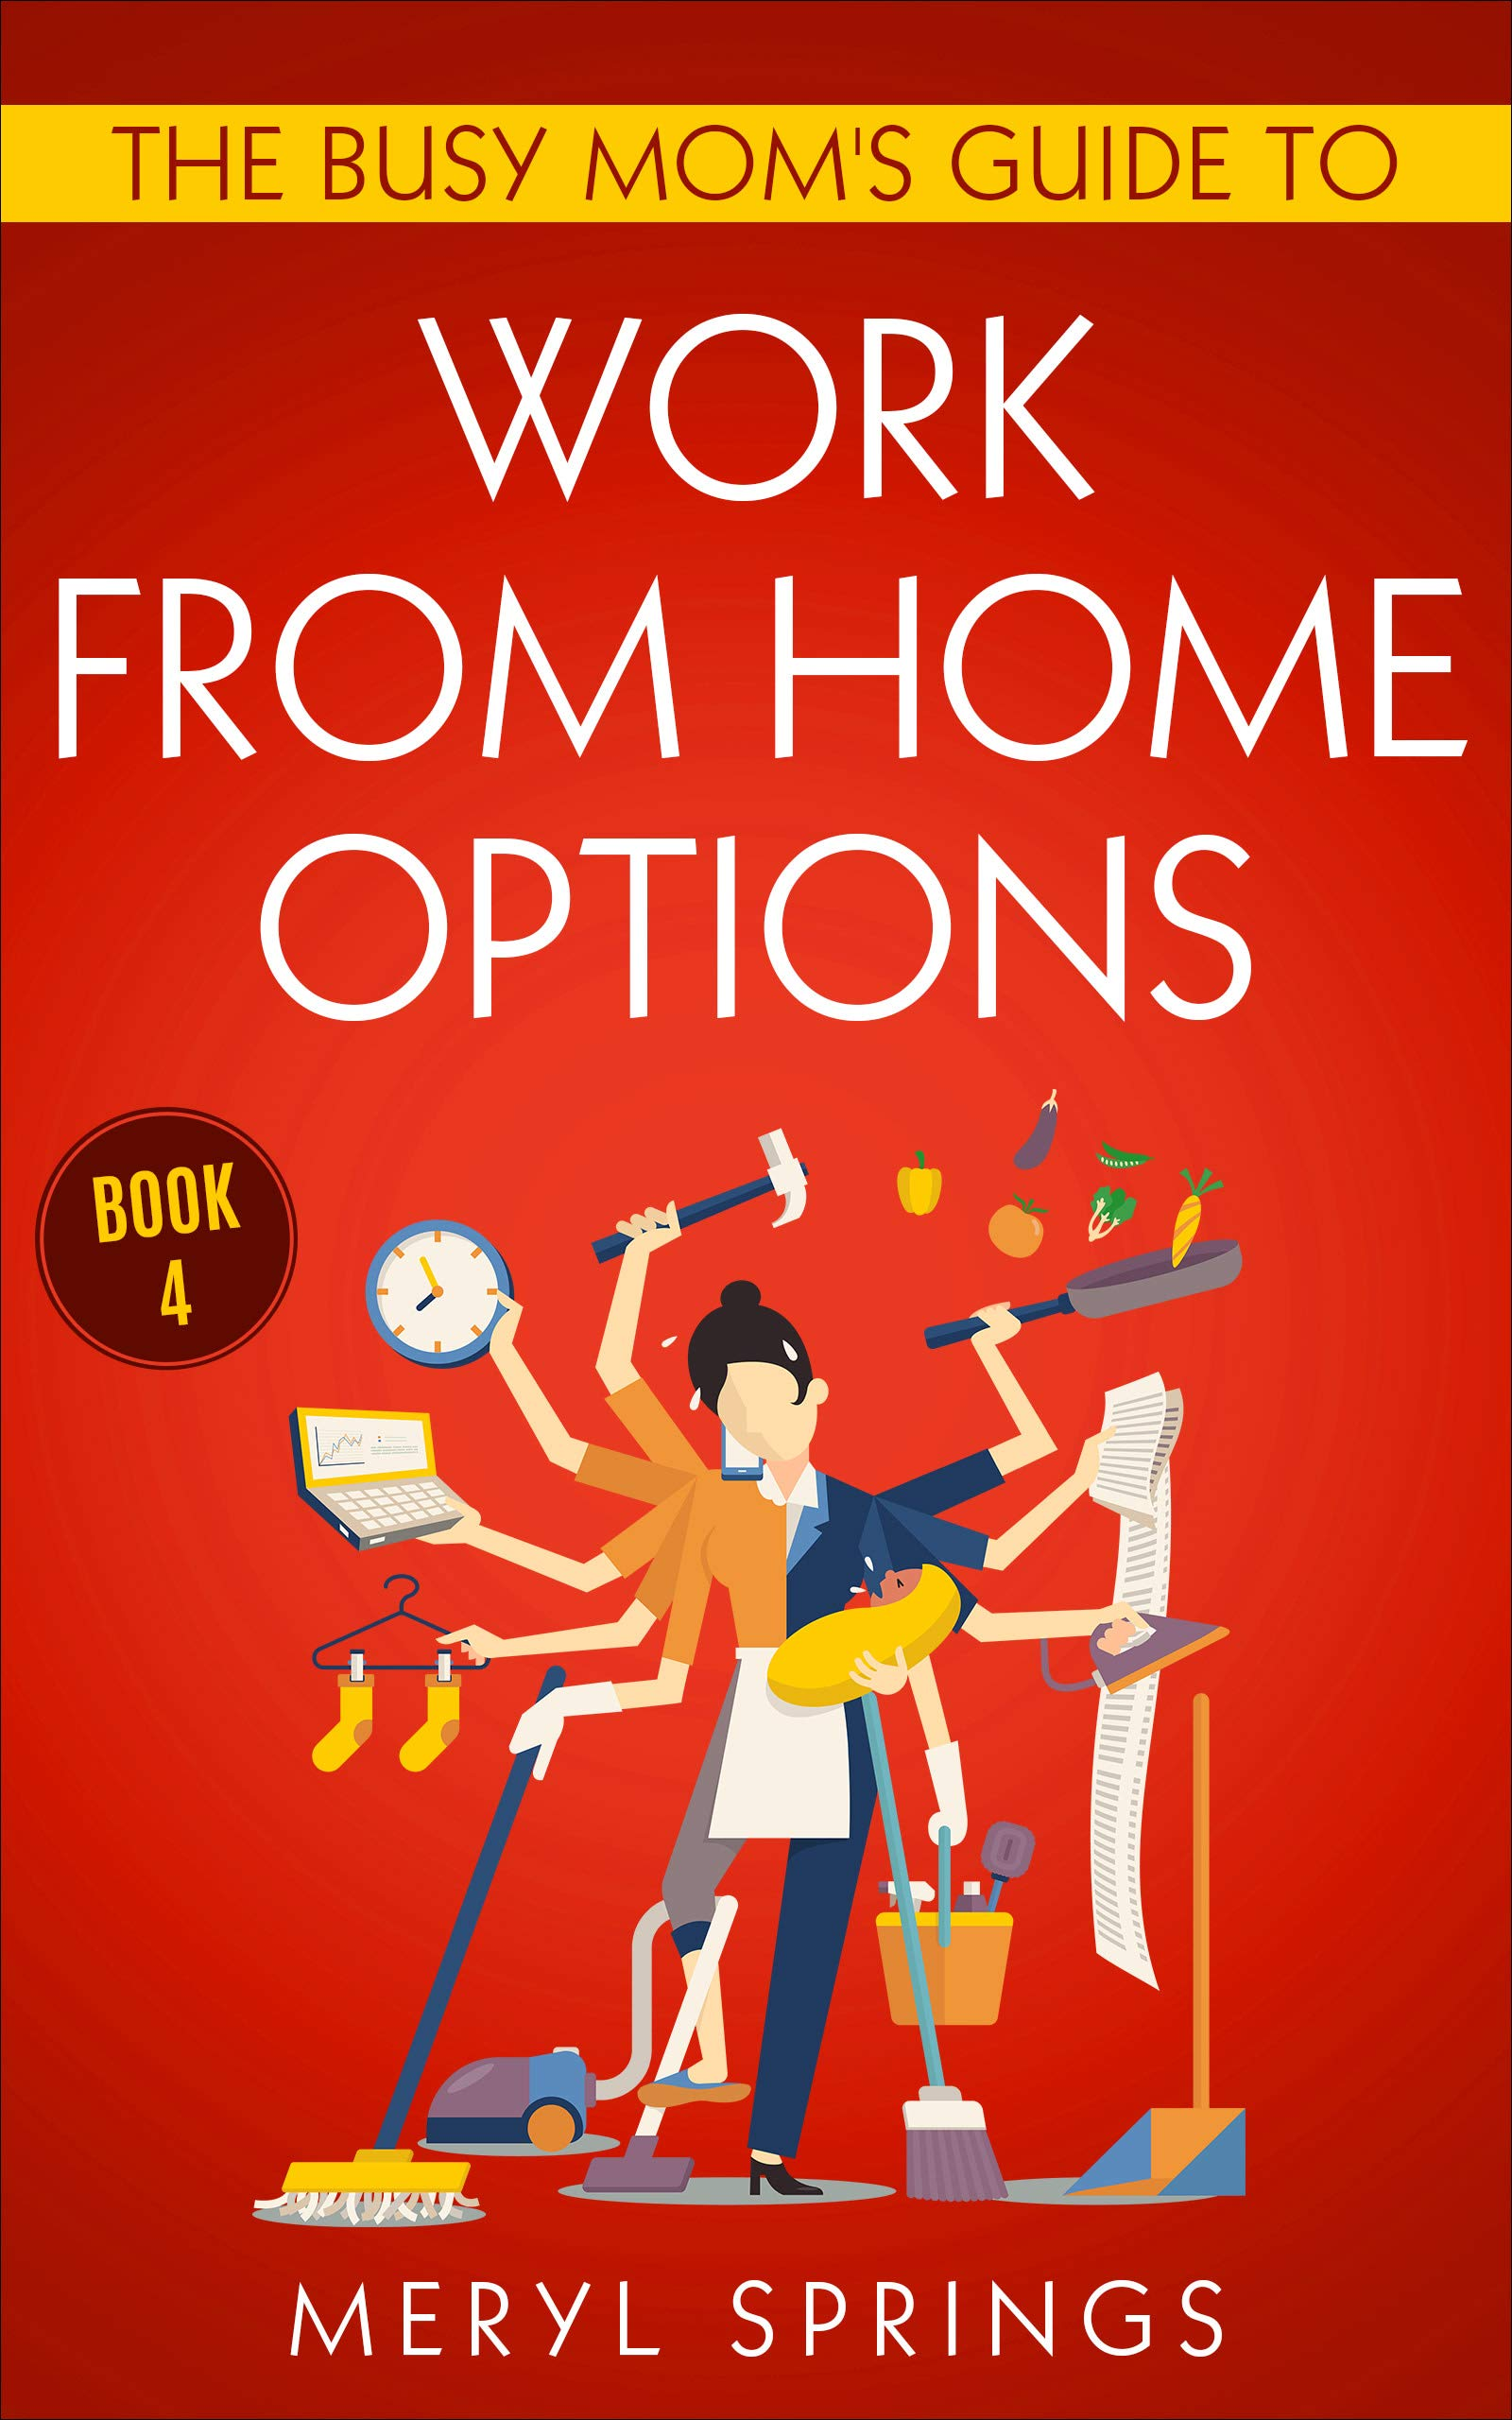 The Busy Mom's Guide to Work From Home Options: Book 4